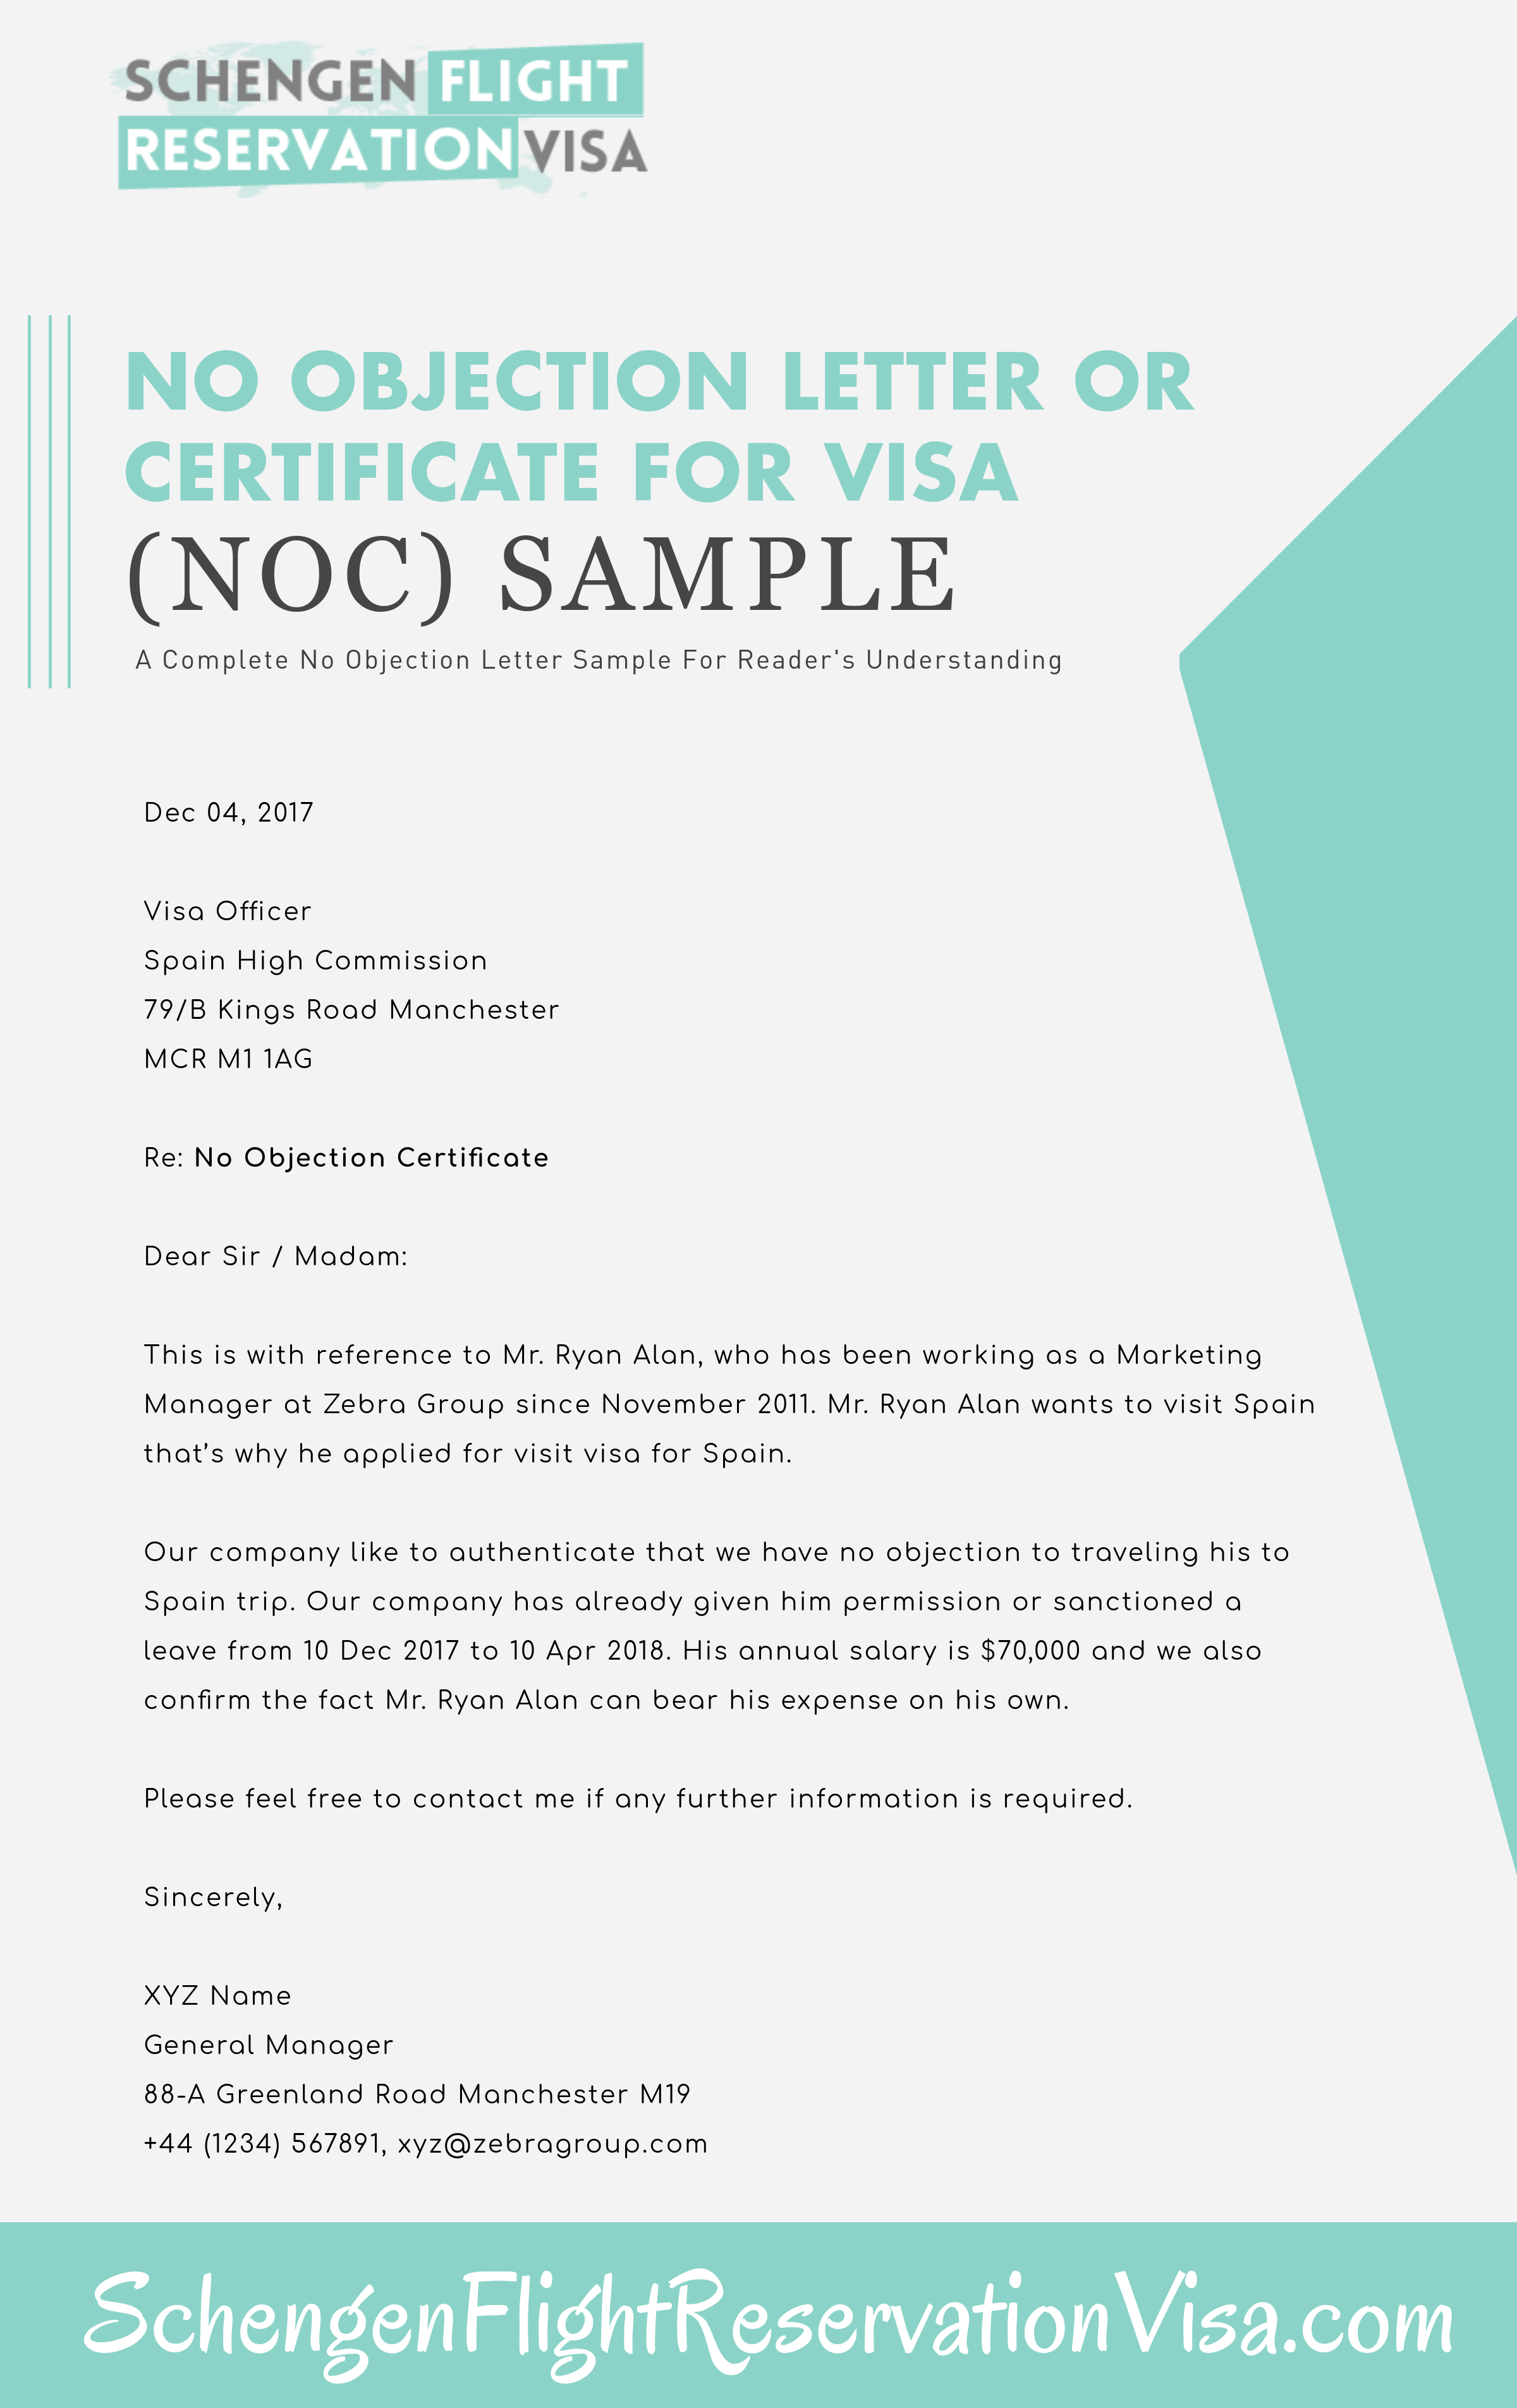 No Objection Letter For Visa Application And Sample Schengen Travel – Noc Sample Letter from Employer